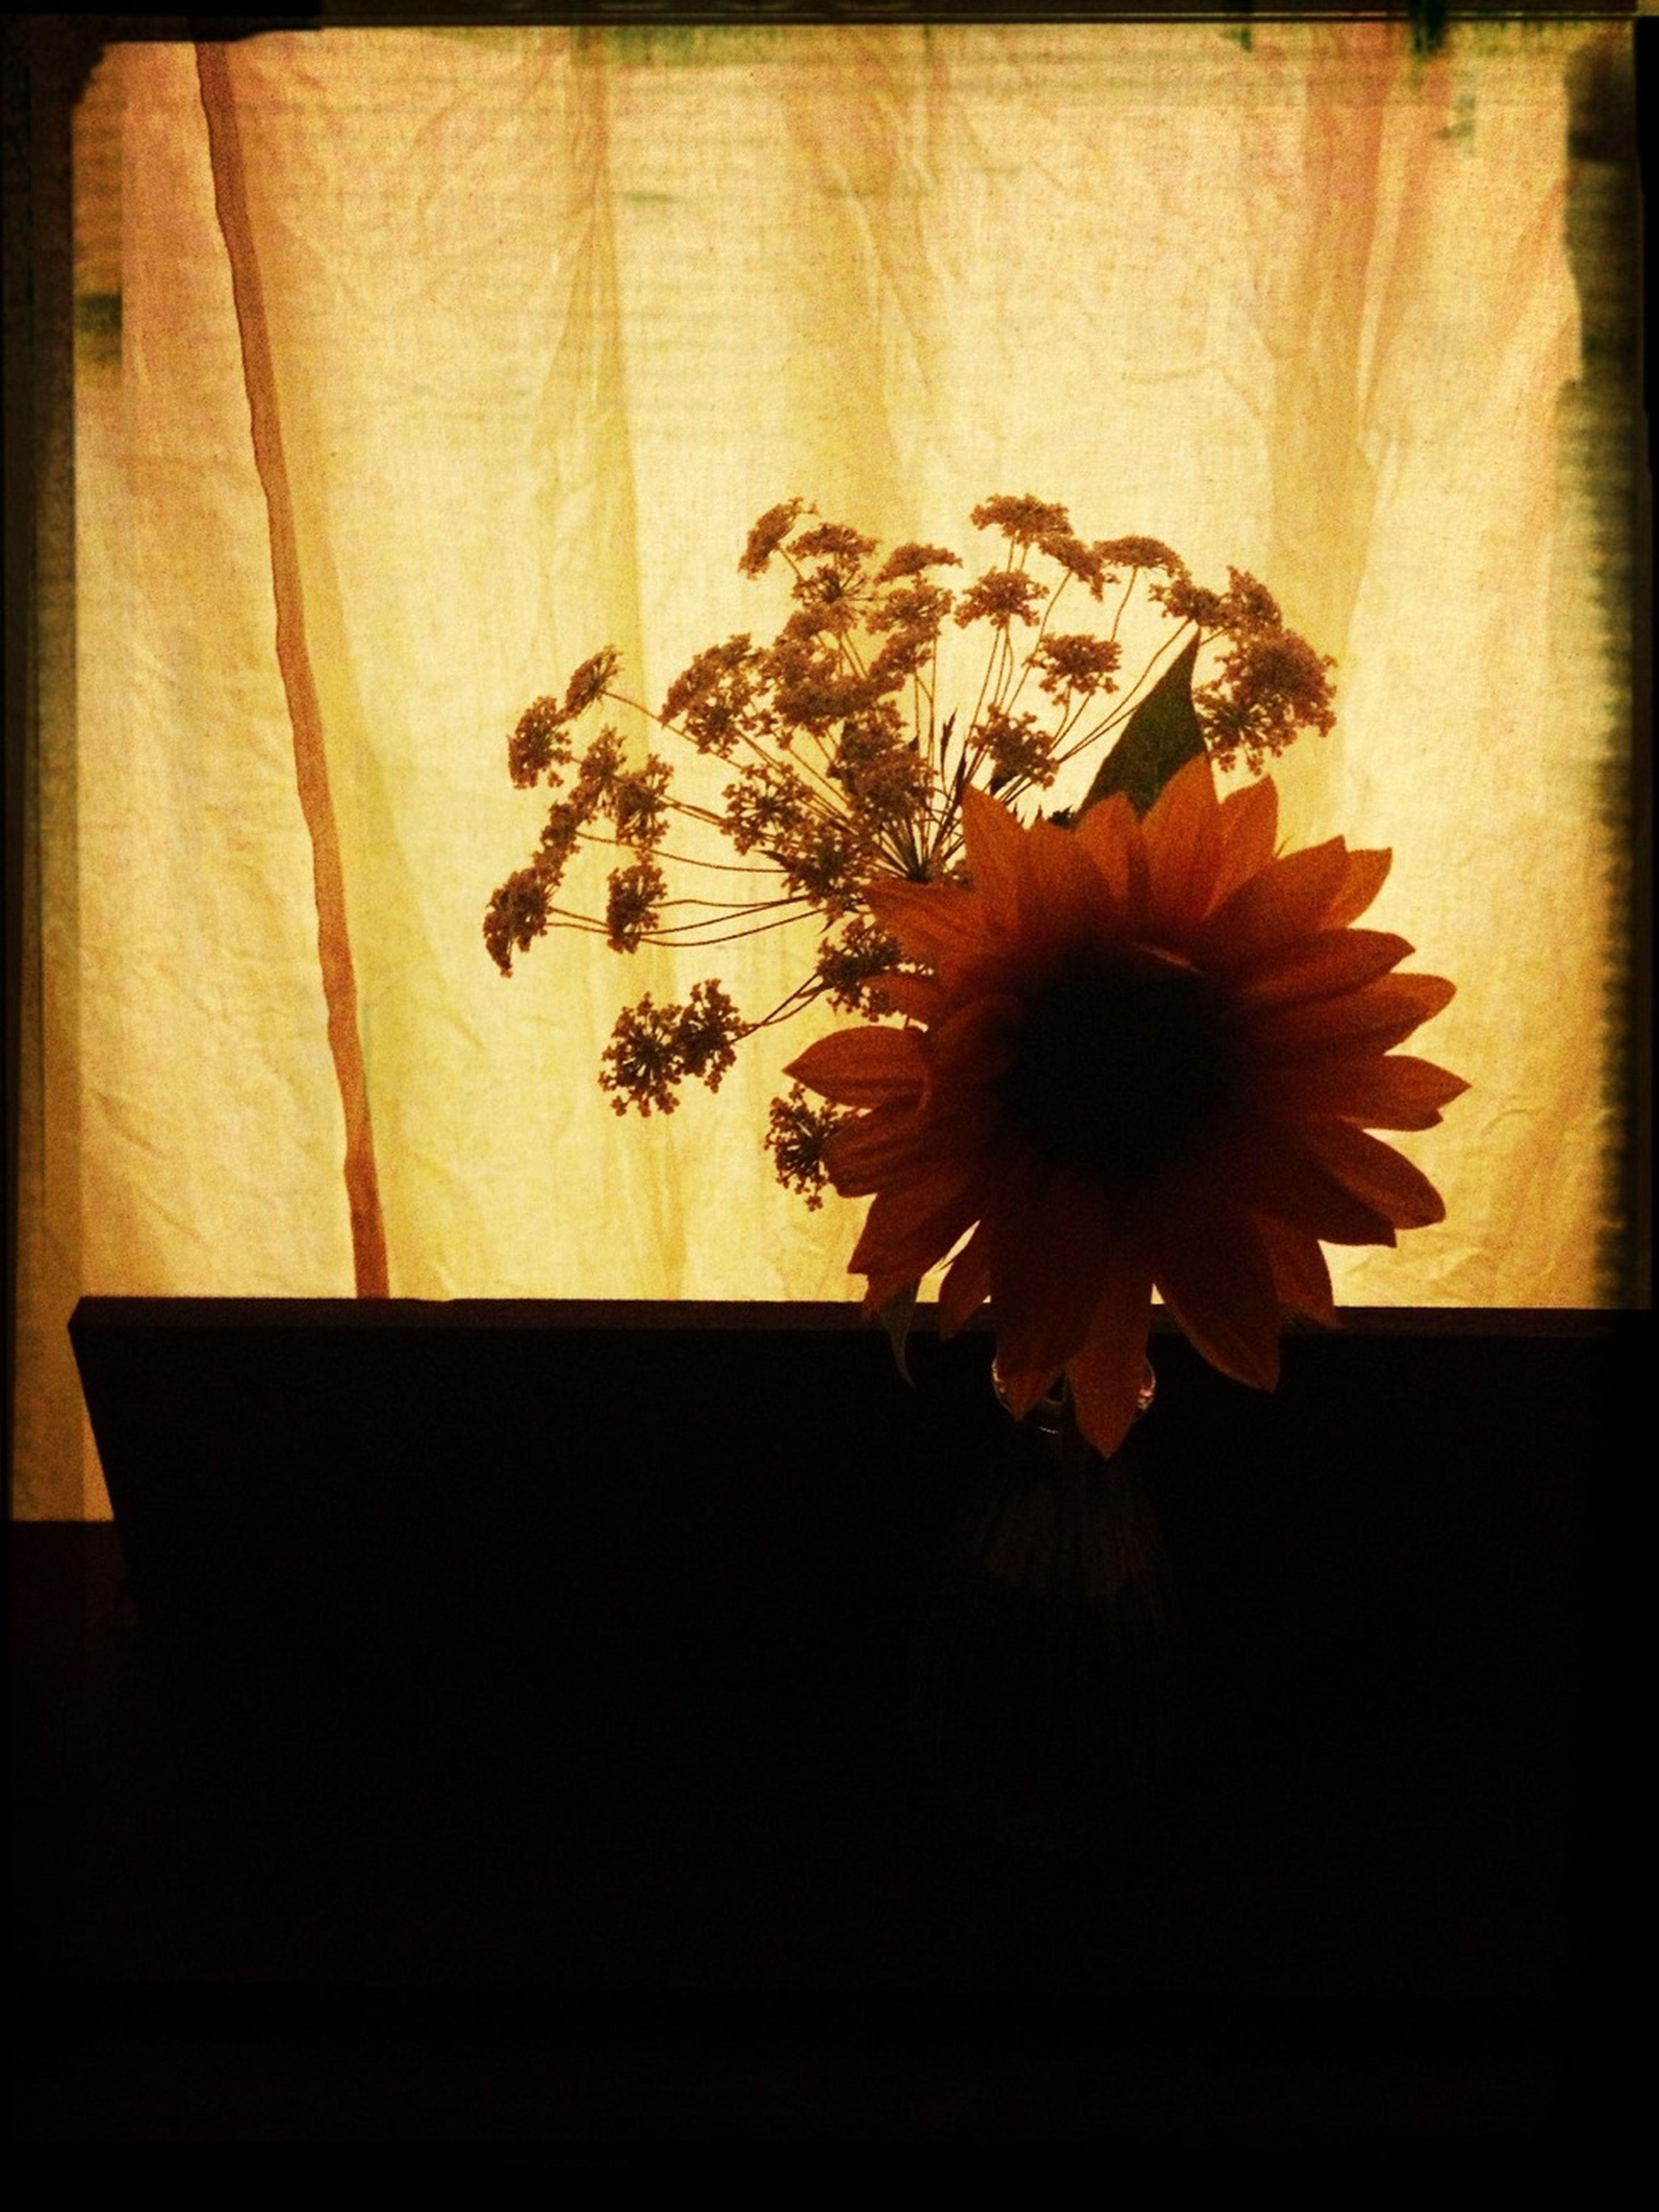 flower, indoors, flower head, petal, fragility, vase, freshness, close-up, home interior, single flower, growth, potted plant, auto post production filter, table, plant, beauty in nature, transfer print, nature, no people, pollen